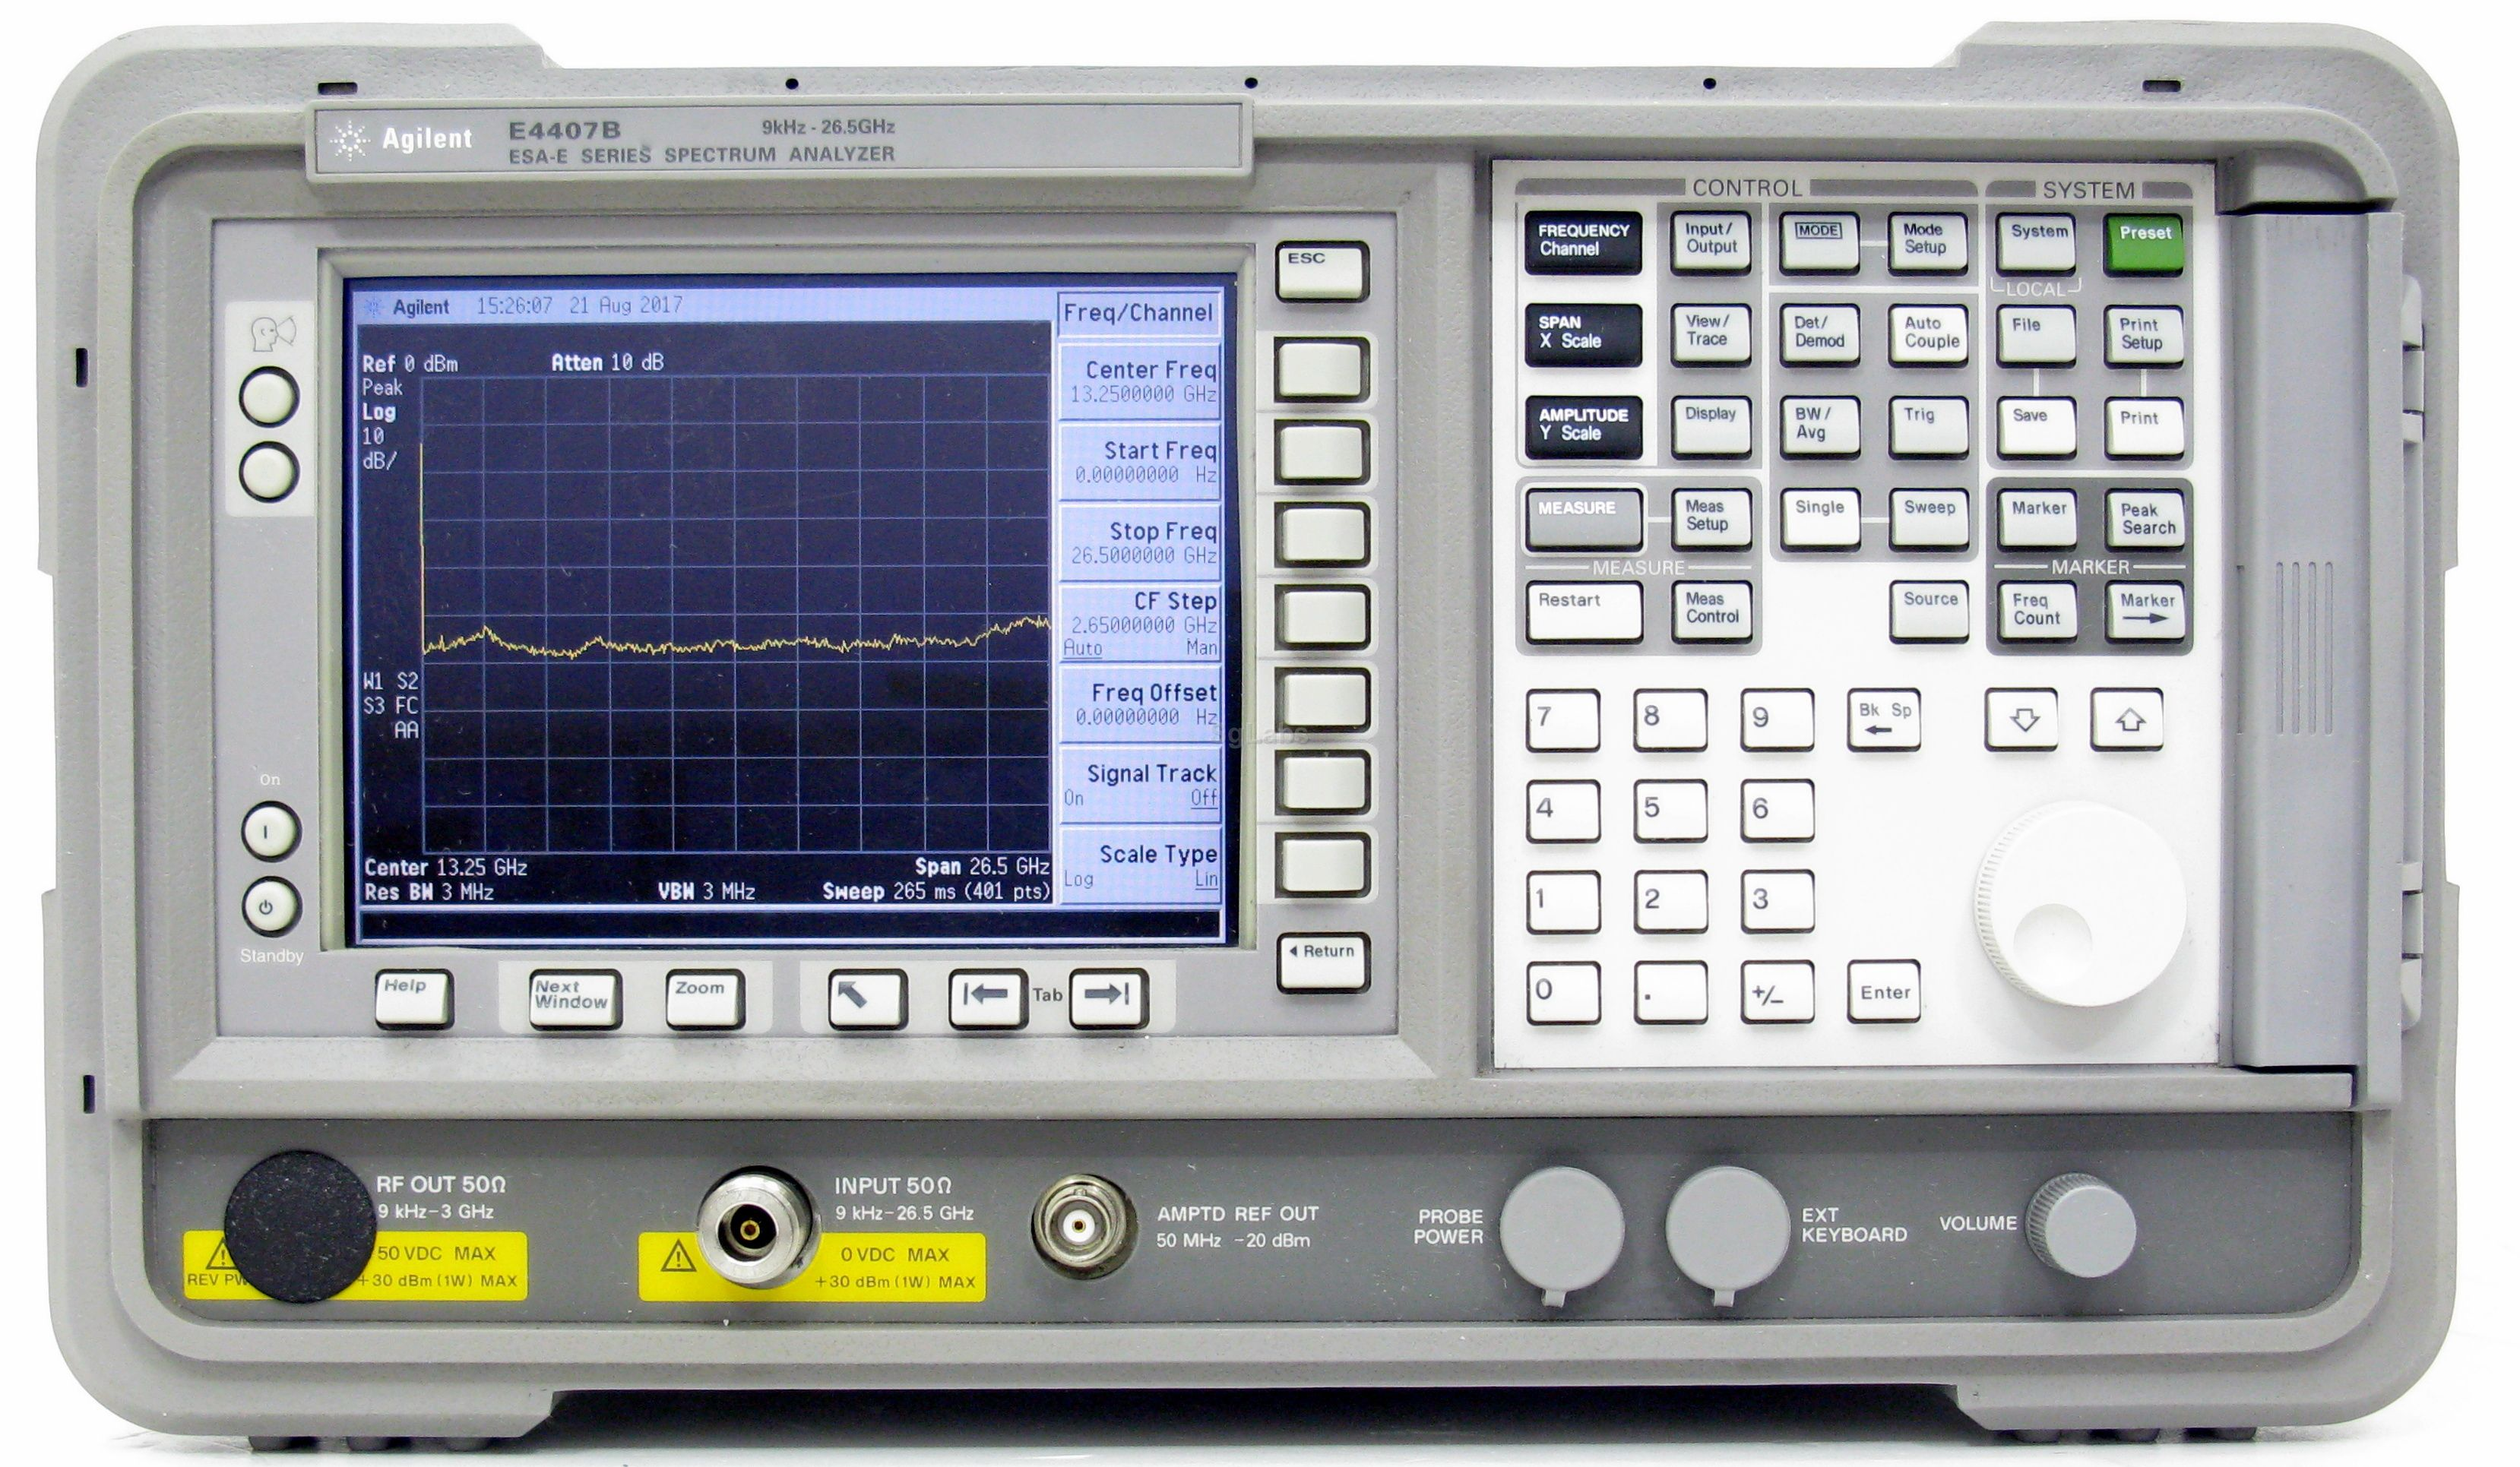 Keysight E4407B 9k-26.5GHz Spectrum Analyzer